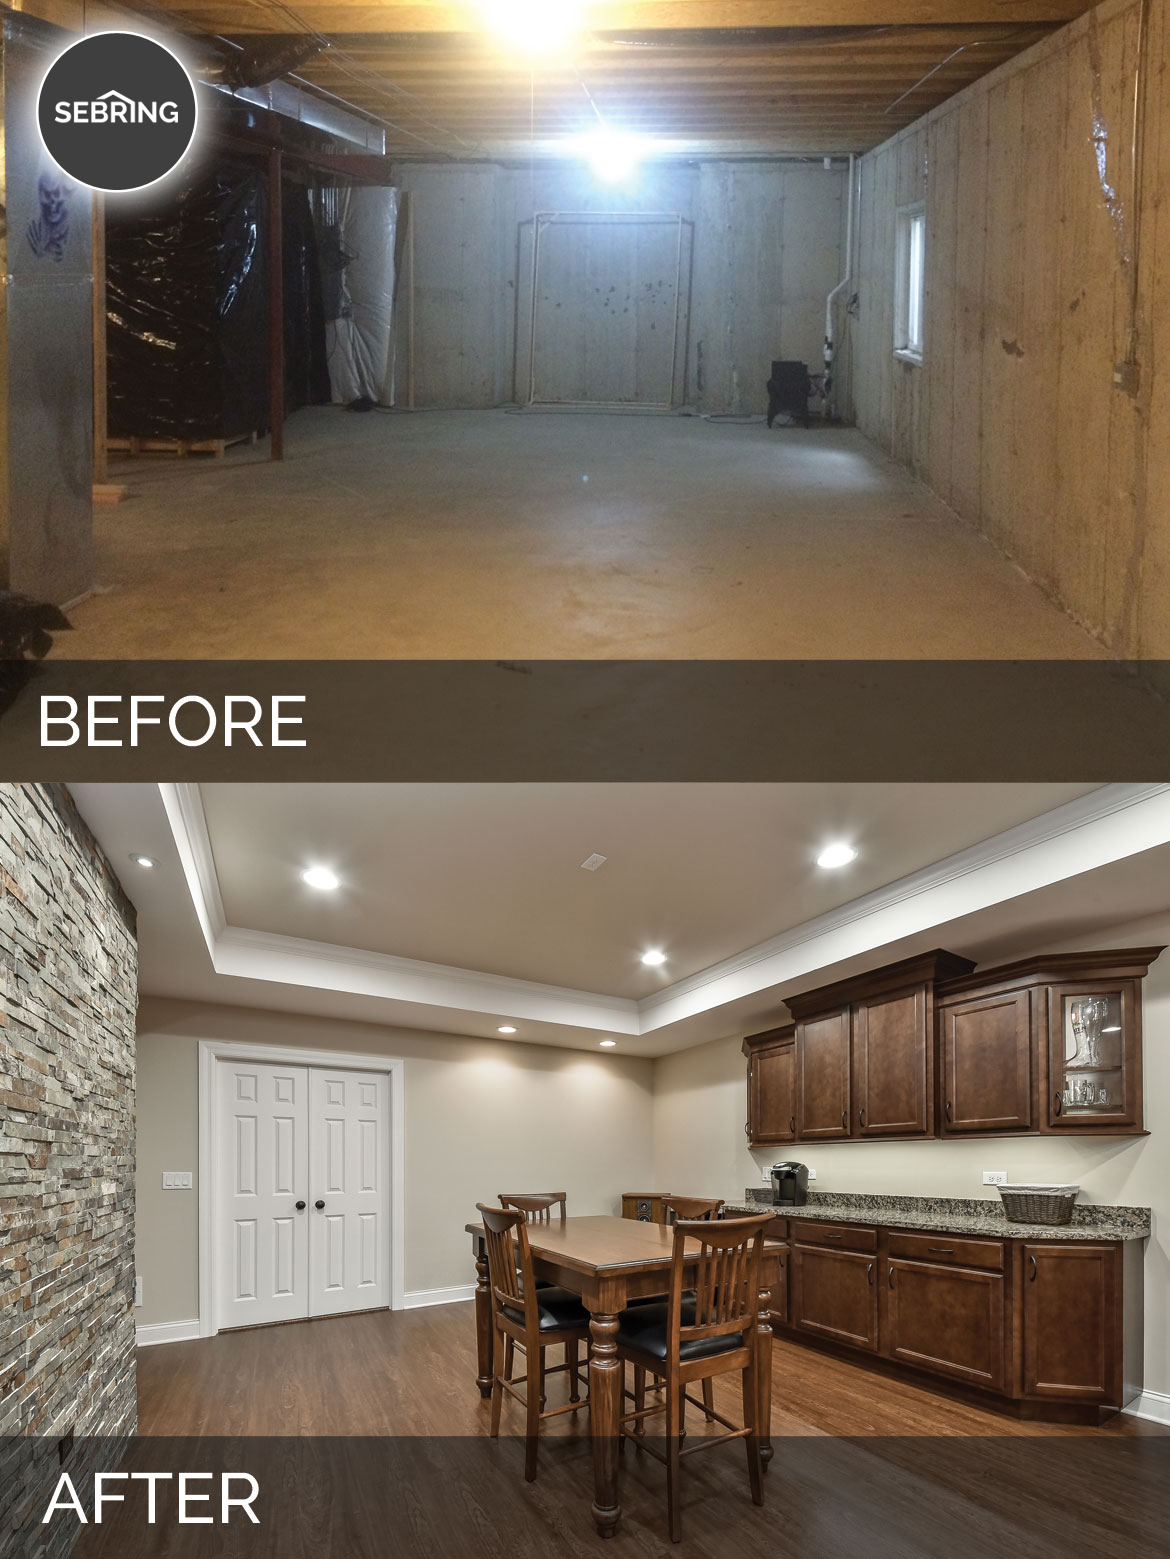 Brian Kelli S Basement Before After Pictures Home Remodeling Contractors Sebring Design Build